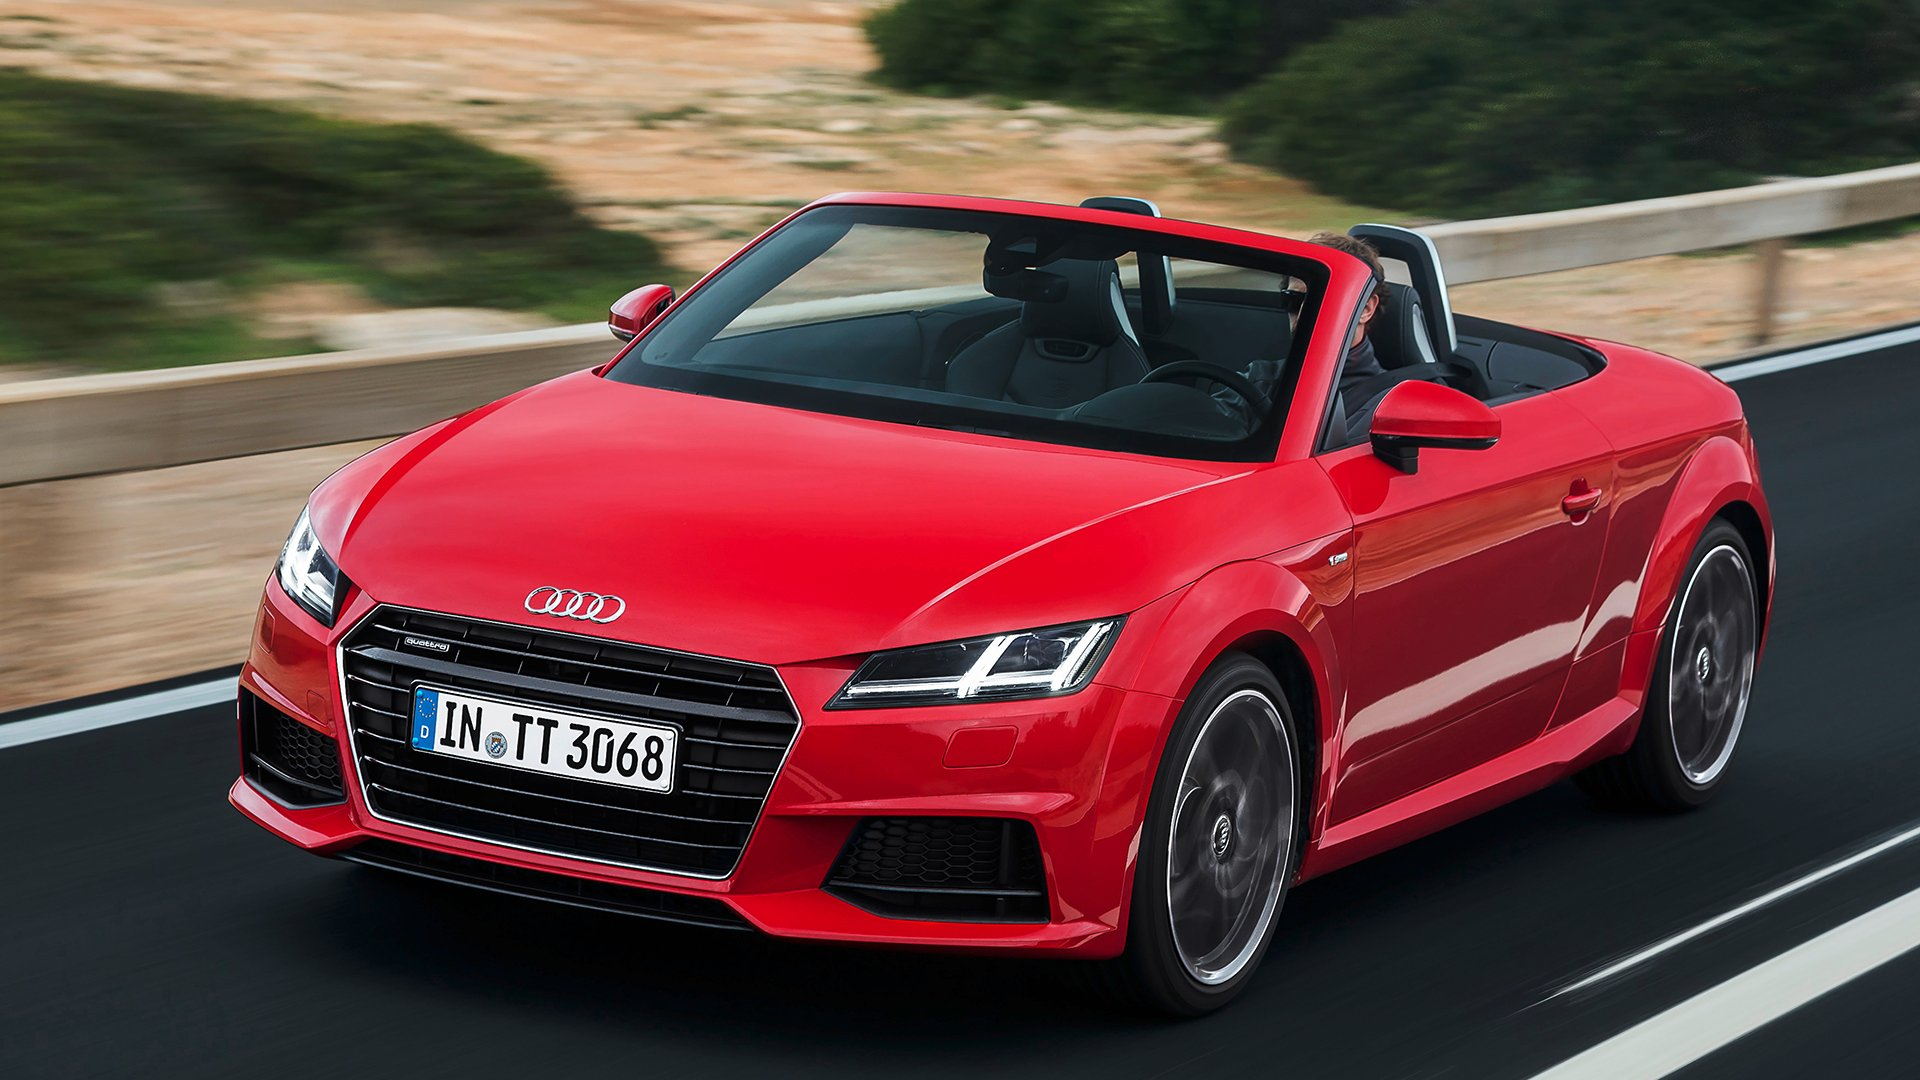 audi announces pricing for the all new tt model line. Black Bedroom Furniture Sets. Home Design Ideas